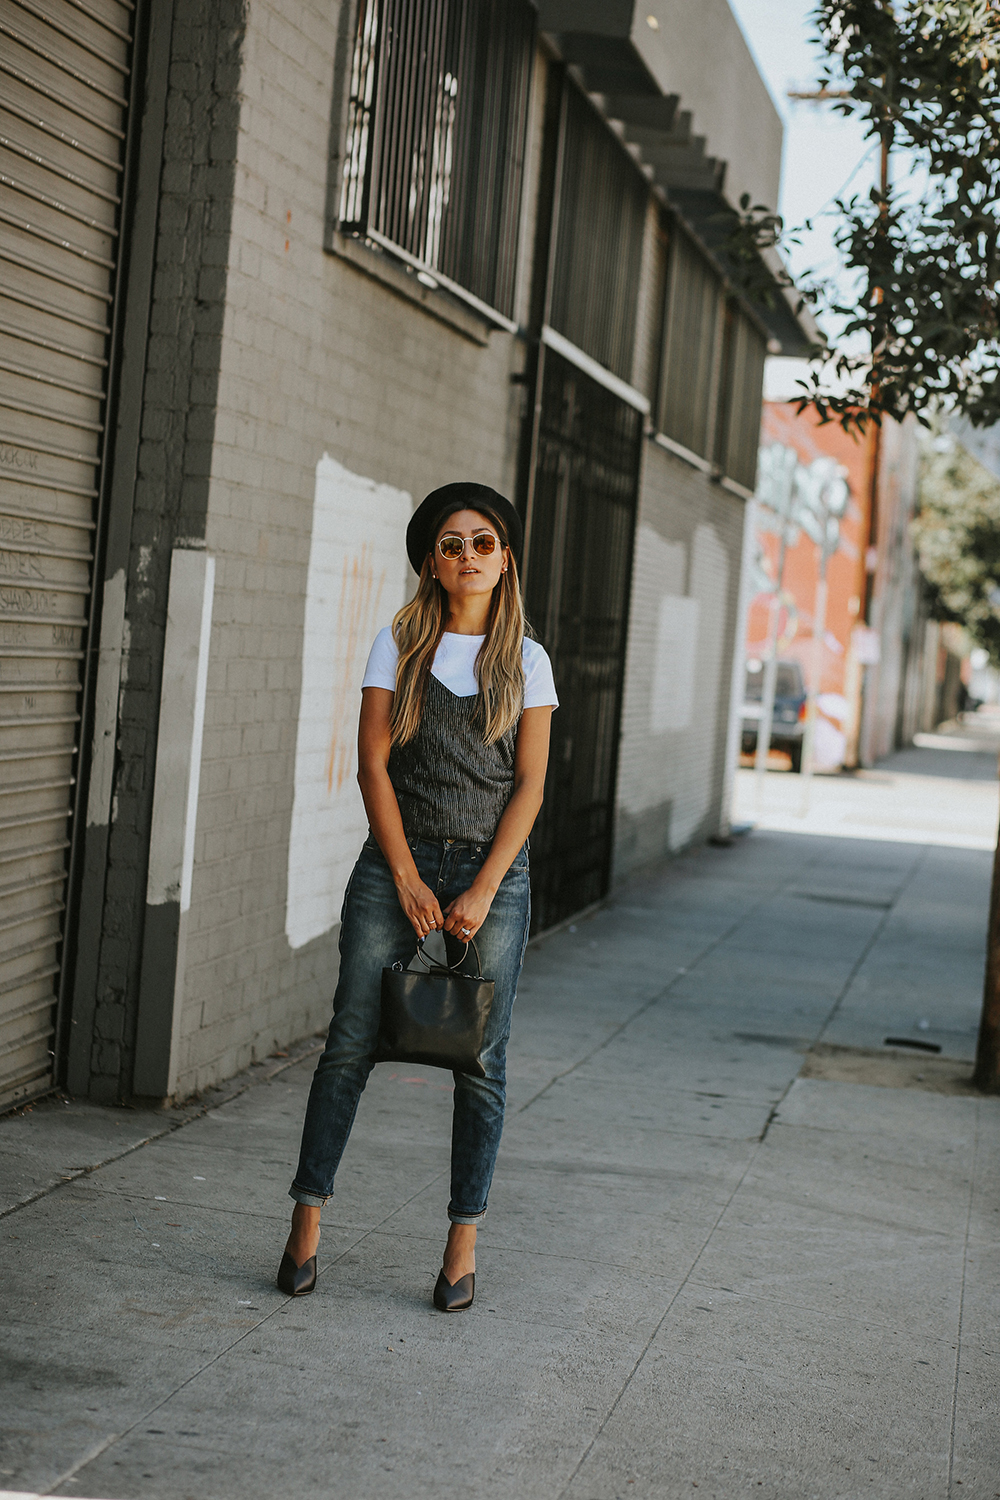 Light Layers, fall, ootd, outfit, la blogger, melrodstyle, who what wear collection, who what wear, latina blogger, hispanic blogger, mexican blogger, fashion, style,